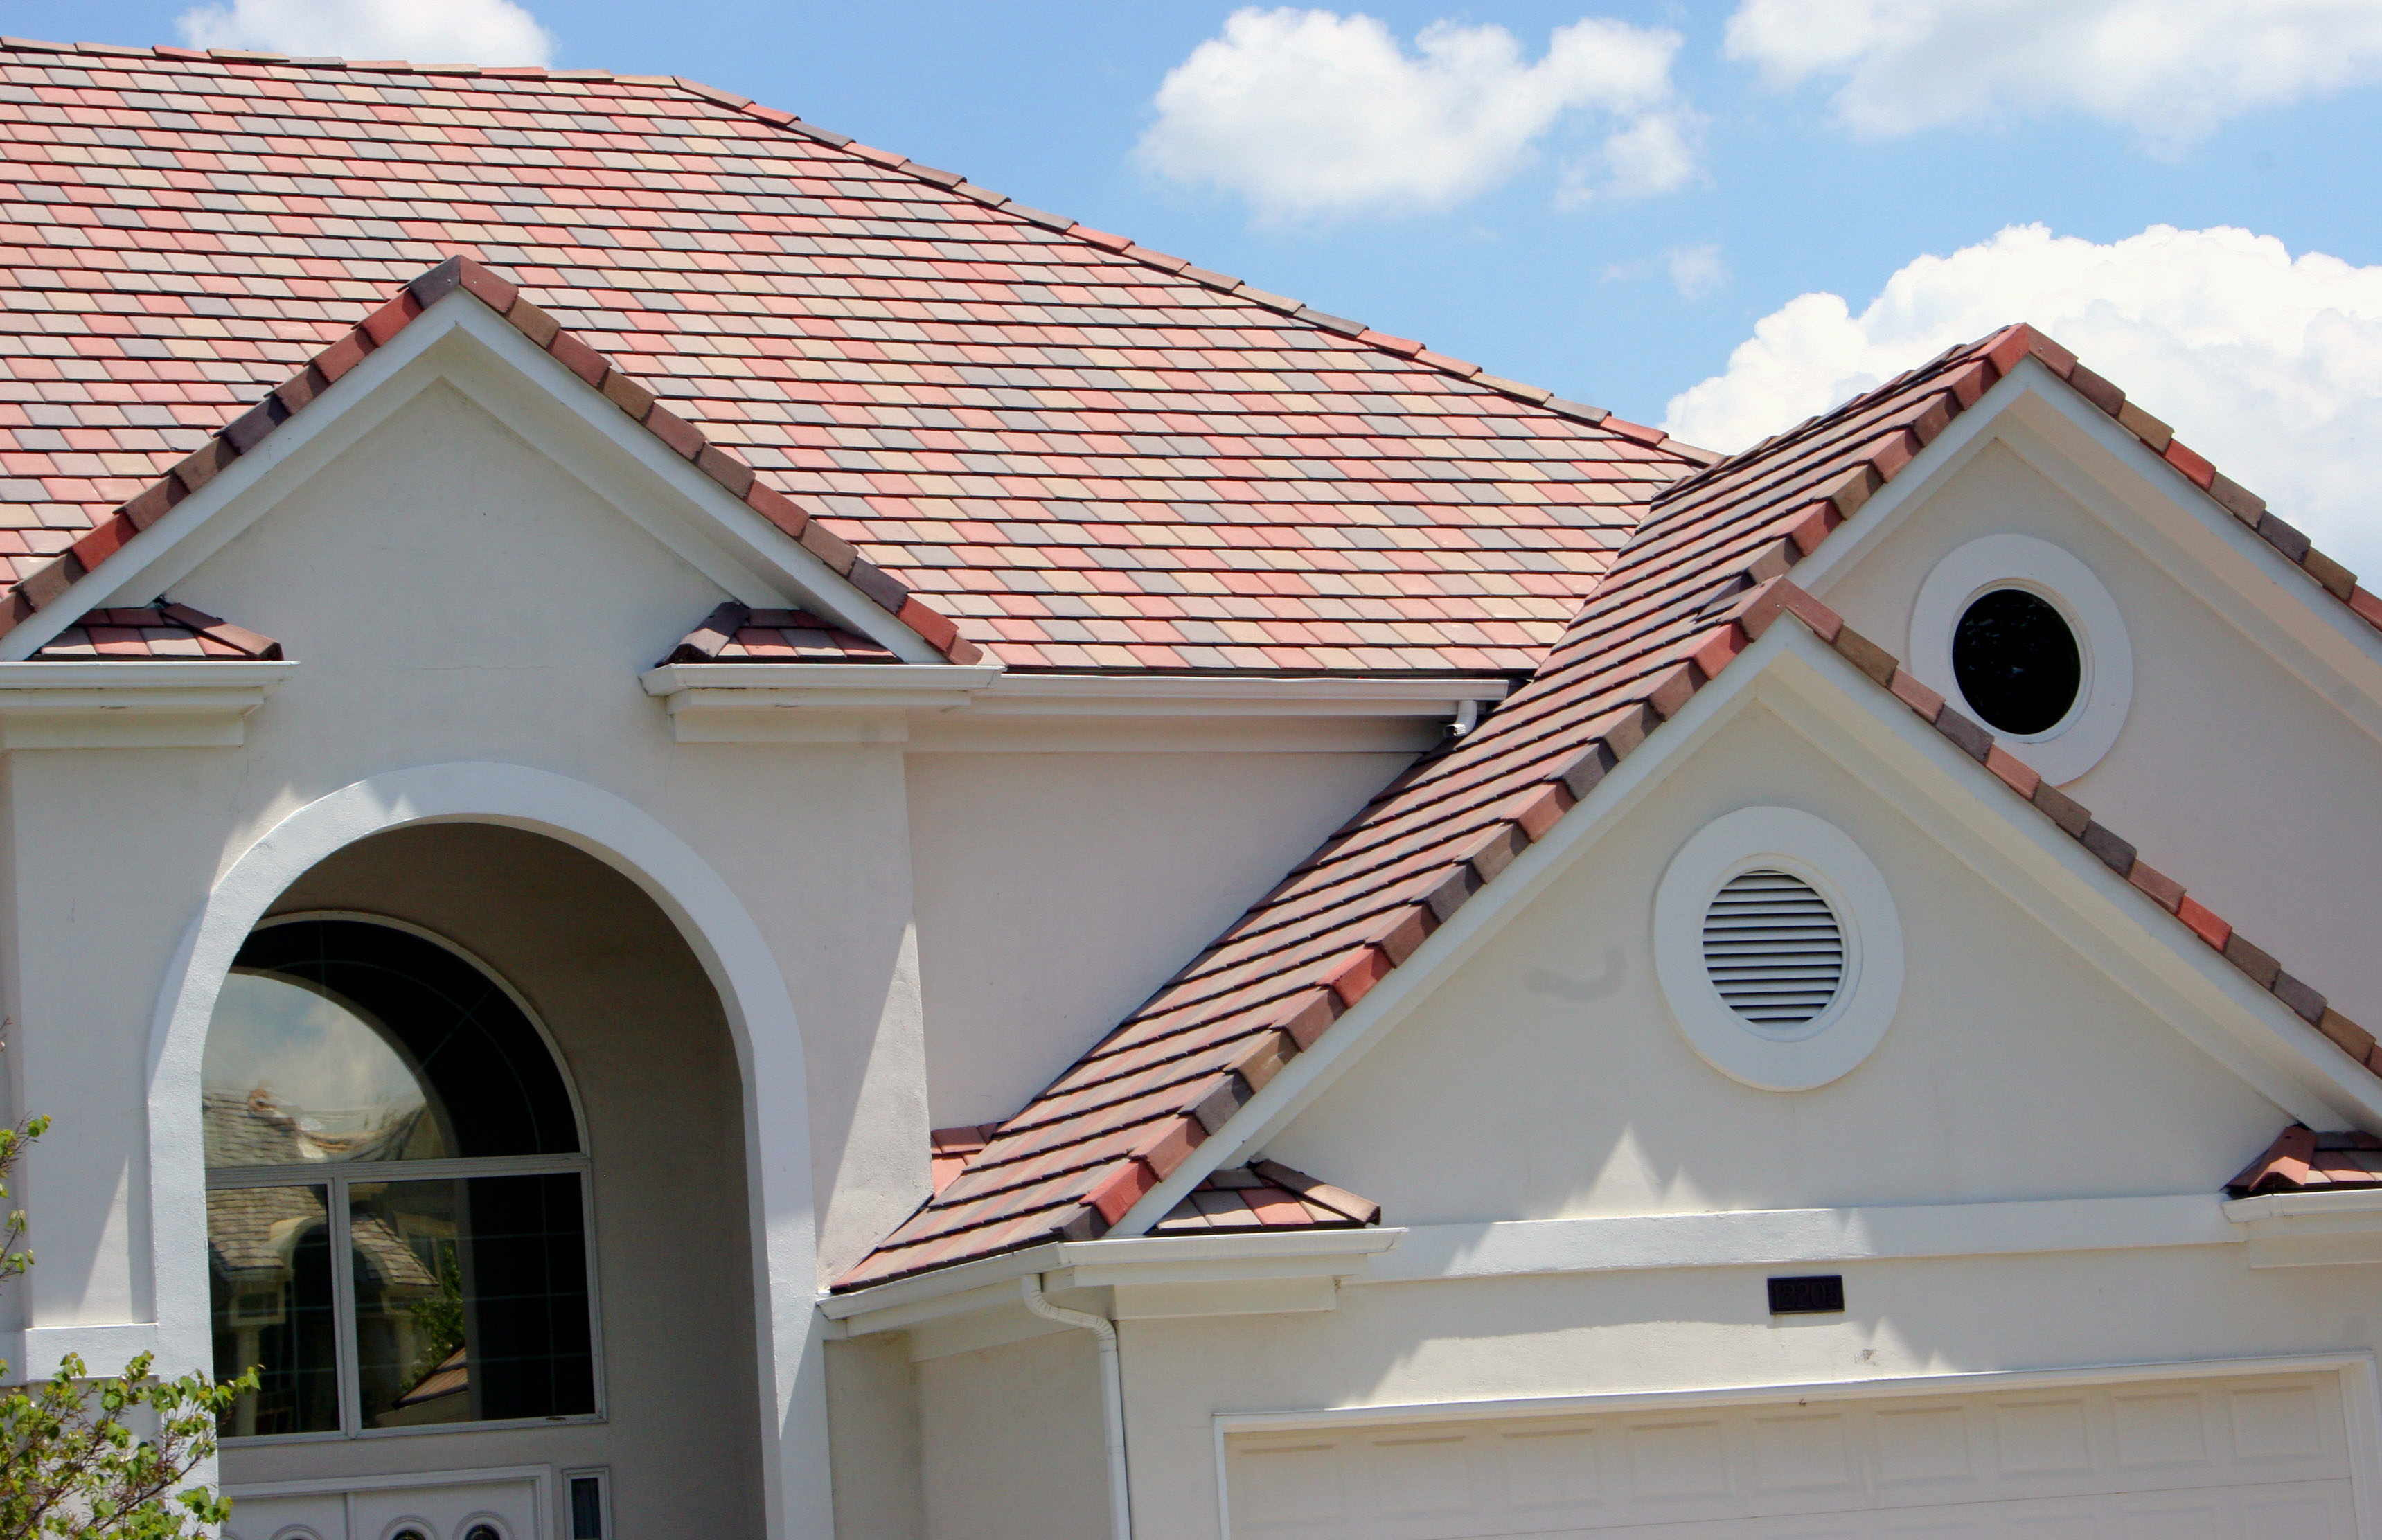 6 Pak Clay Plain Clay Roofing Tiles Double Roman Roof Tiles Khaprail Tiles Design Images.